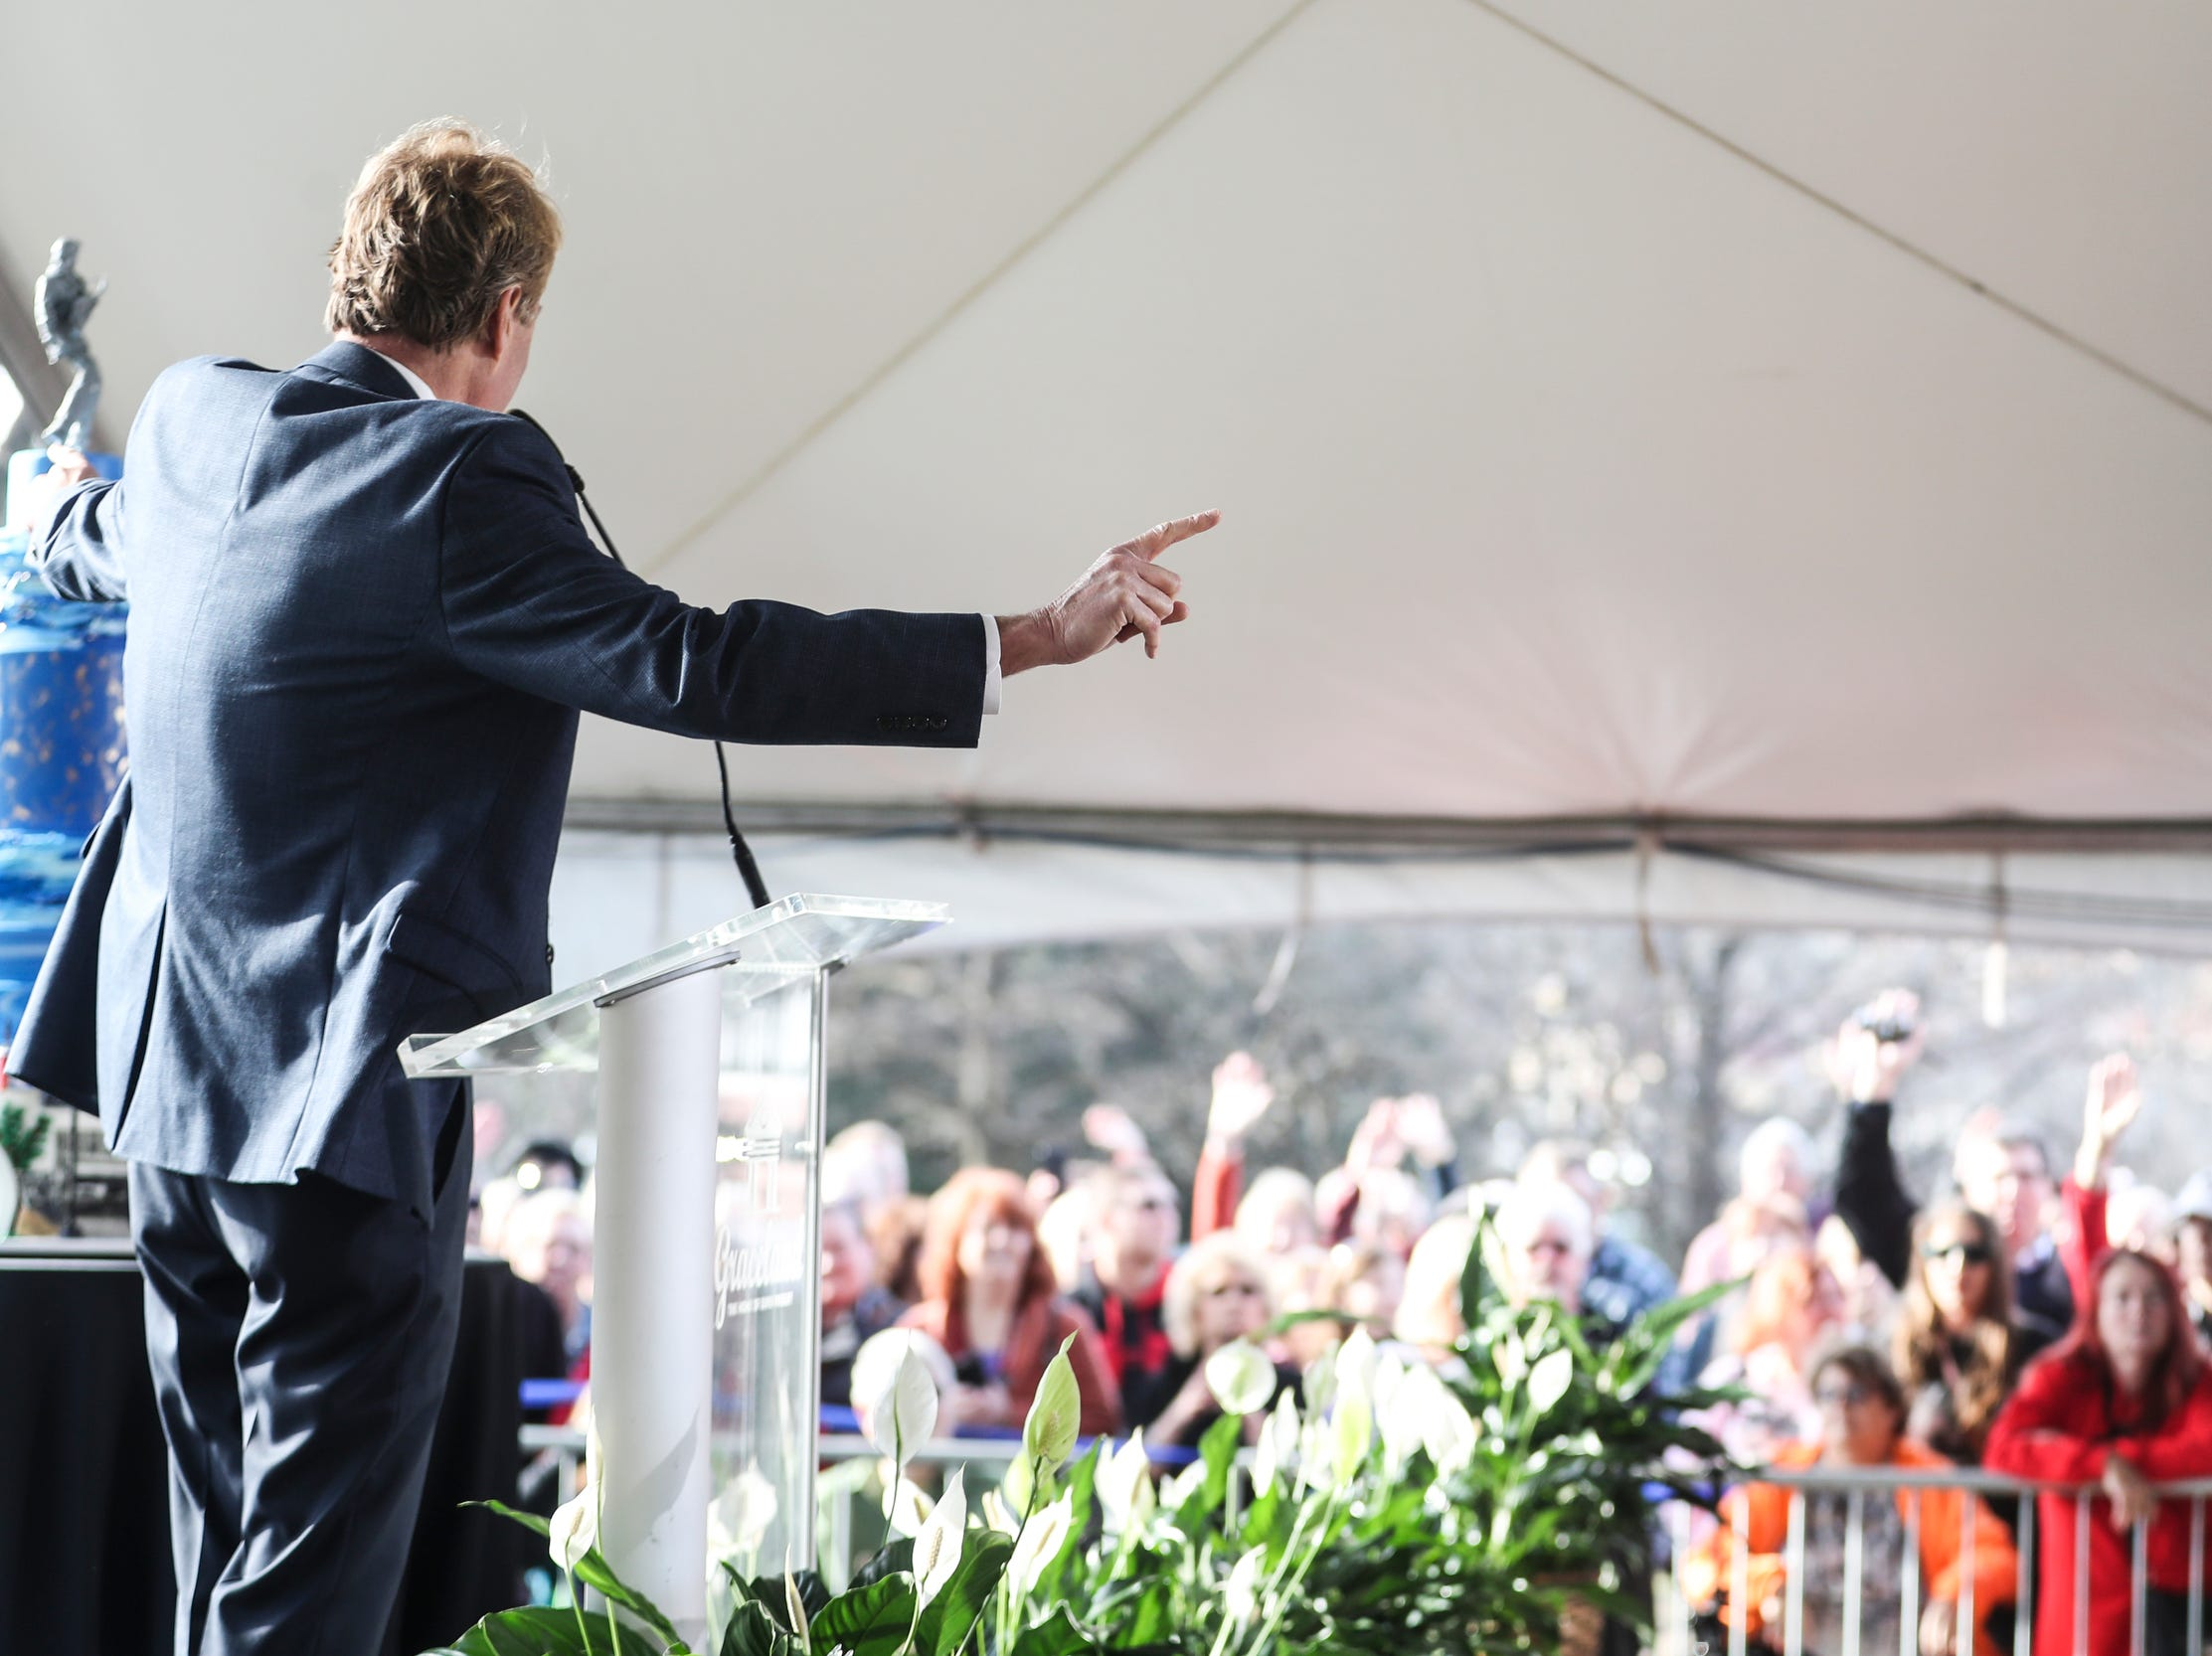 January 08 2019 - Kevin Kane, president and CEO of the Memphis Convention & Visitors Bureau, thanks fans gathered on Graceland's north lawn on Tuesday to celebrate during the Elvis Birthday Proclamation Ceremony. Tuesday would have been Elvis' 84th birthday.